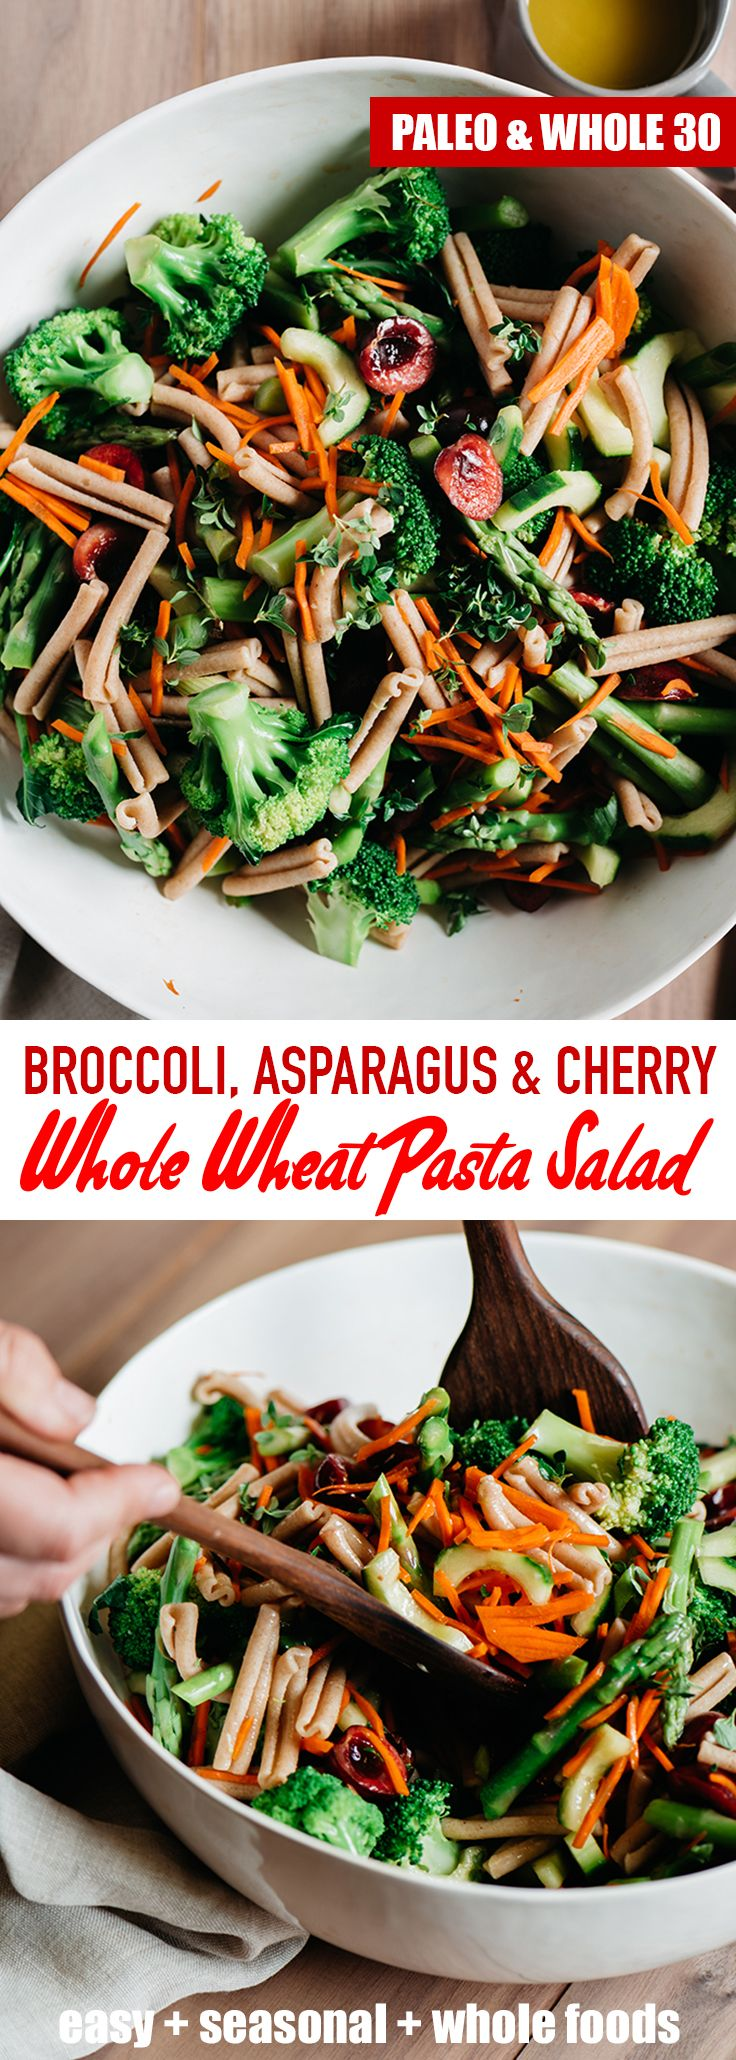 This asparagus pasta with broccoli and cherries salad is a lighter, healthier, seasonal version of the classic. It's fast and easy (30 minutes!) with whole wheat noodles that stand up well to a long marinade. You'll want to make this vegan pasta salad recipe all summer long! #pastasalad #vegan #vegetarian #30minutes #sidedish #broccoli #asparagus